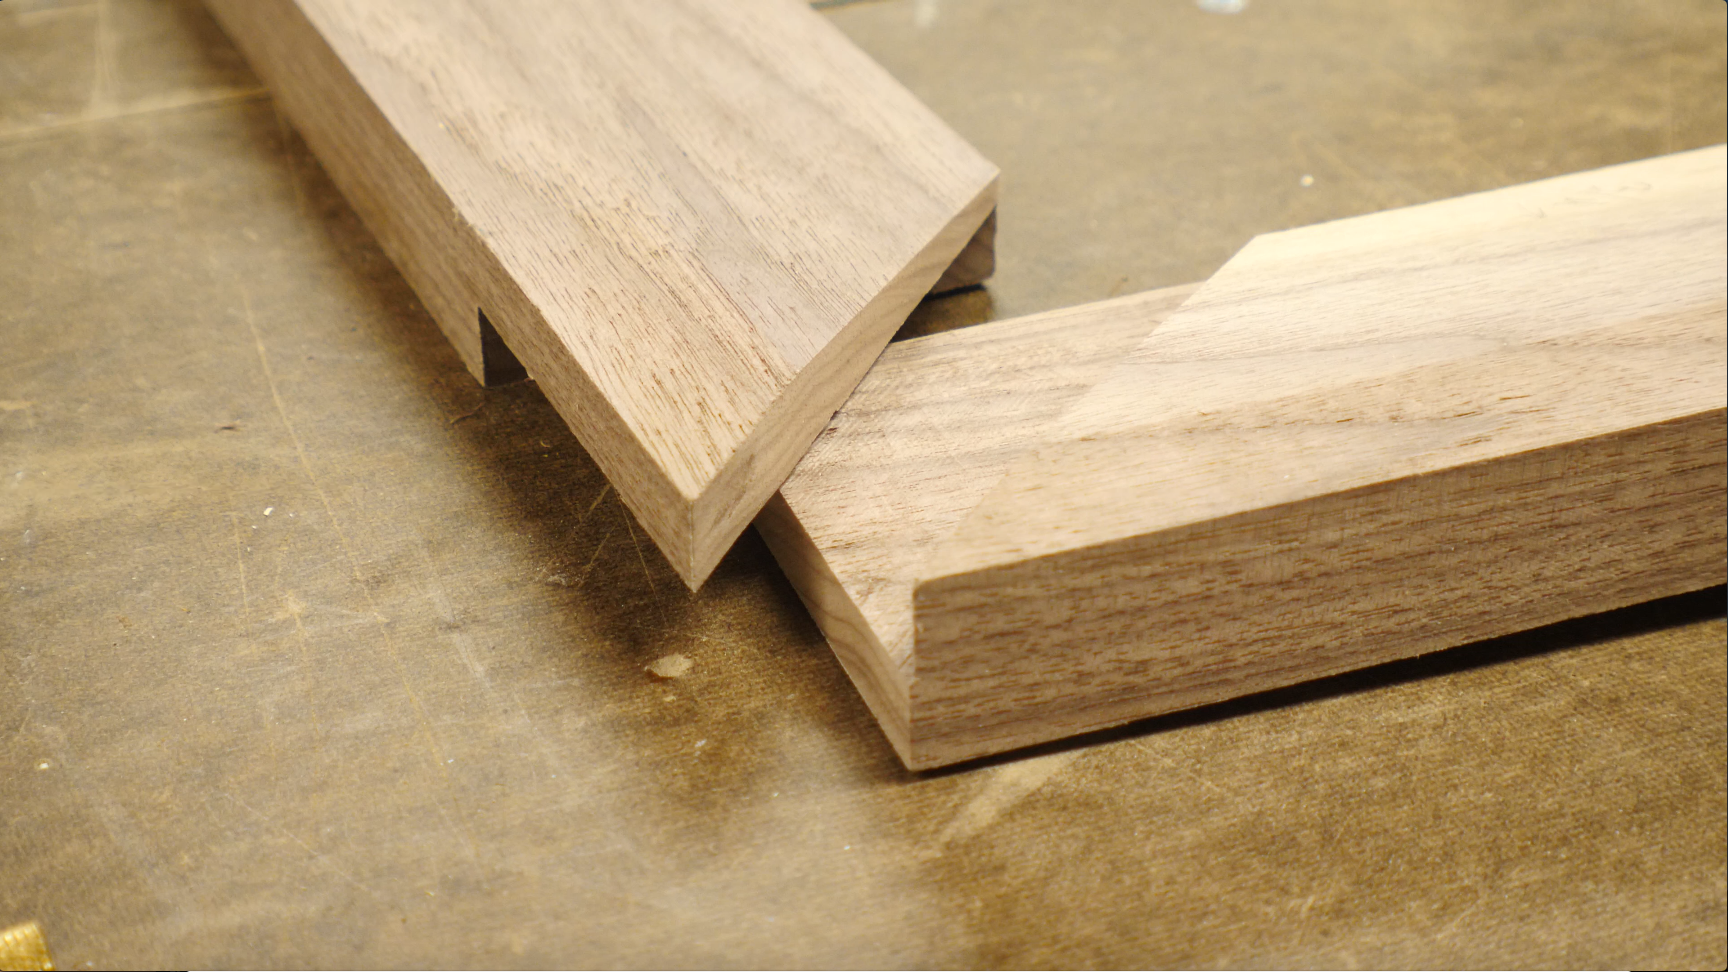 how to make a picture frame / miter joints half lap joints